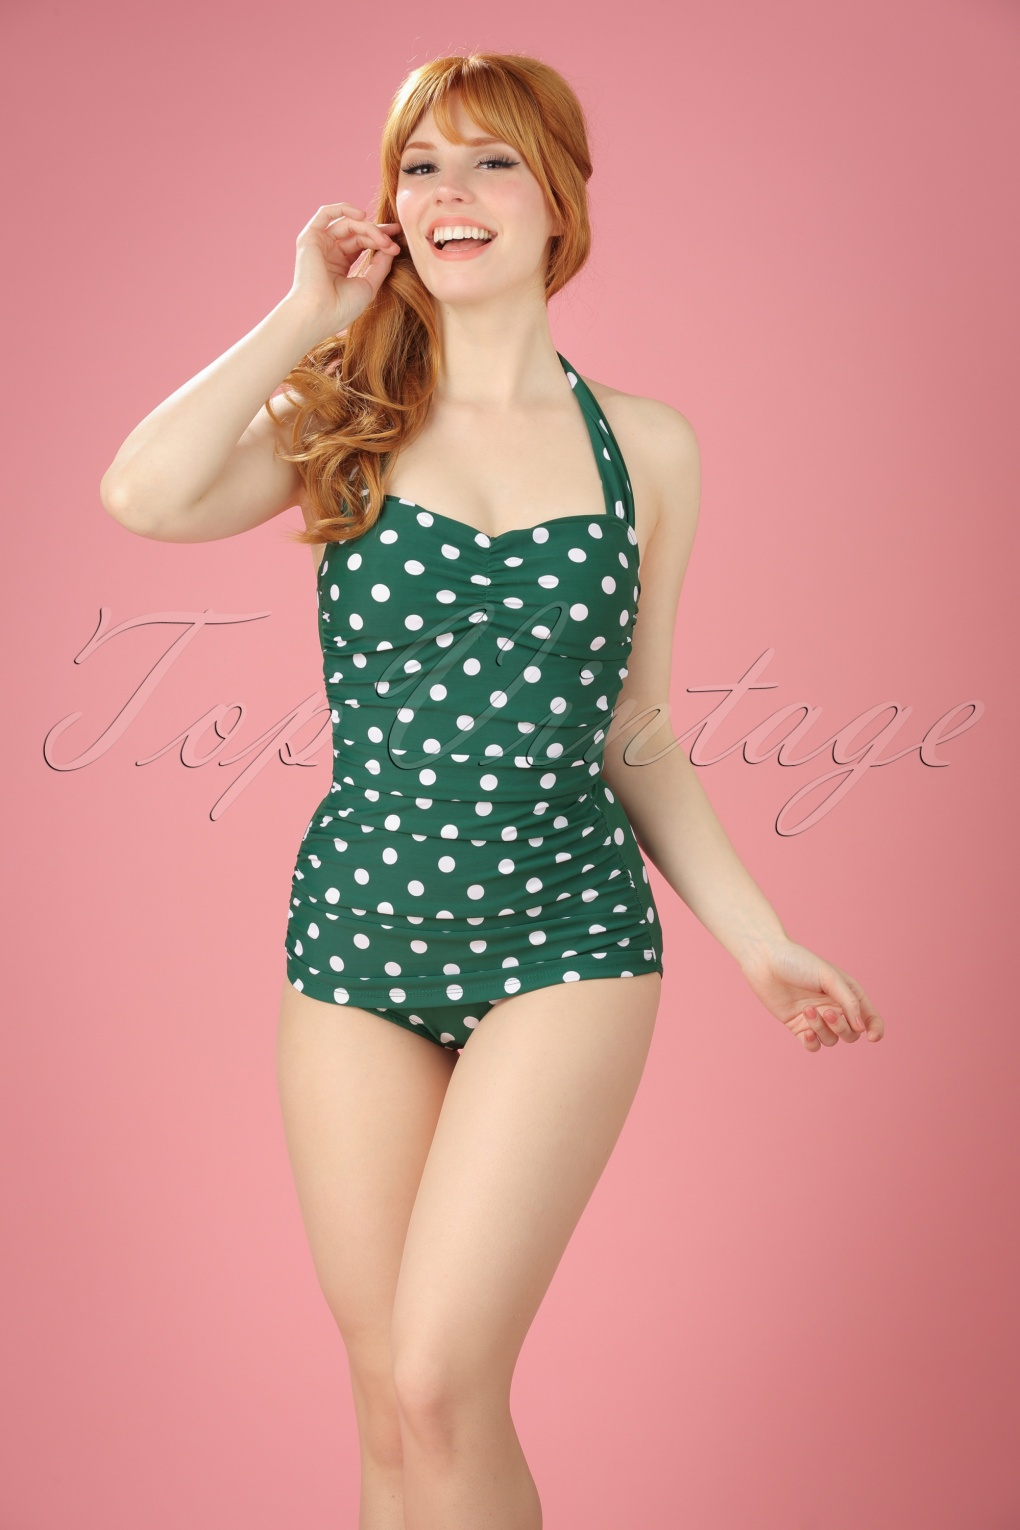 8ae9d7a8c39 Esther Williams Classic Polkadot Swimsuit 161 49 16935 9W ...